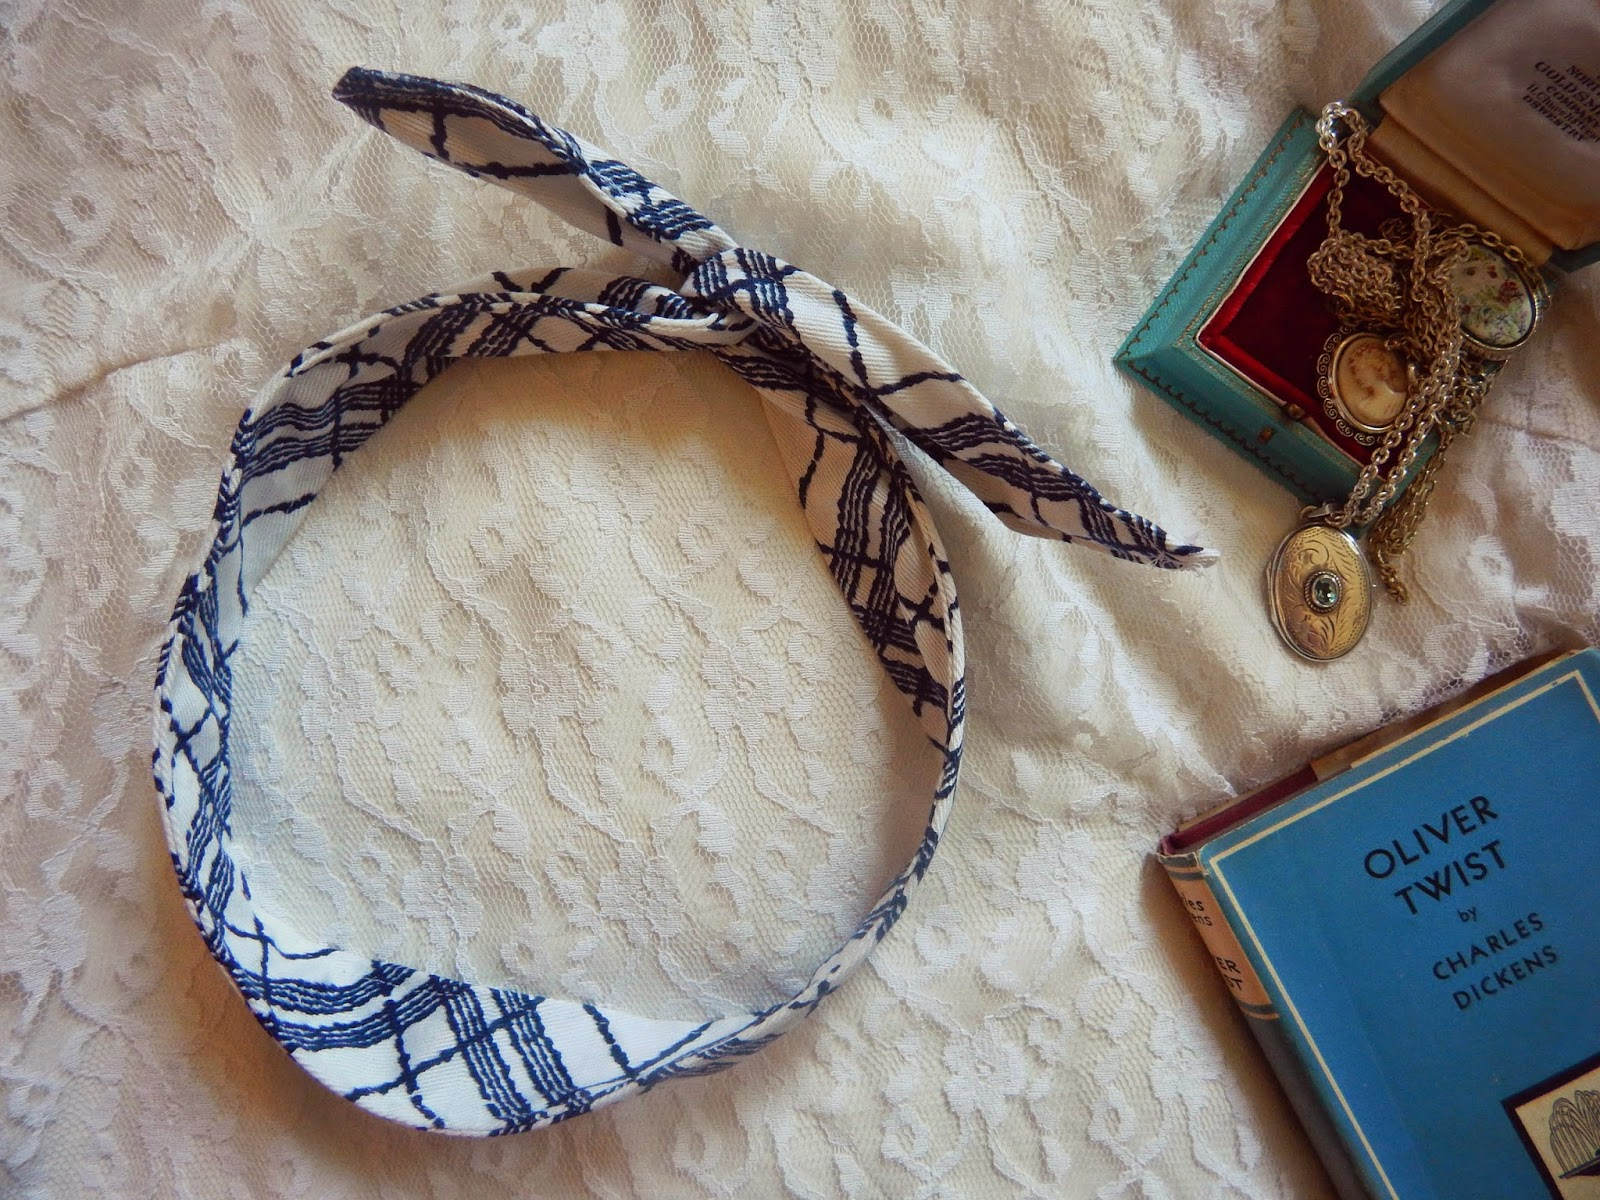 DIY Sew Wire Headband